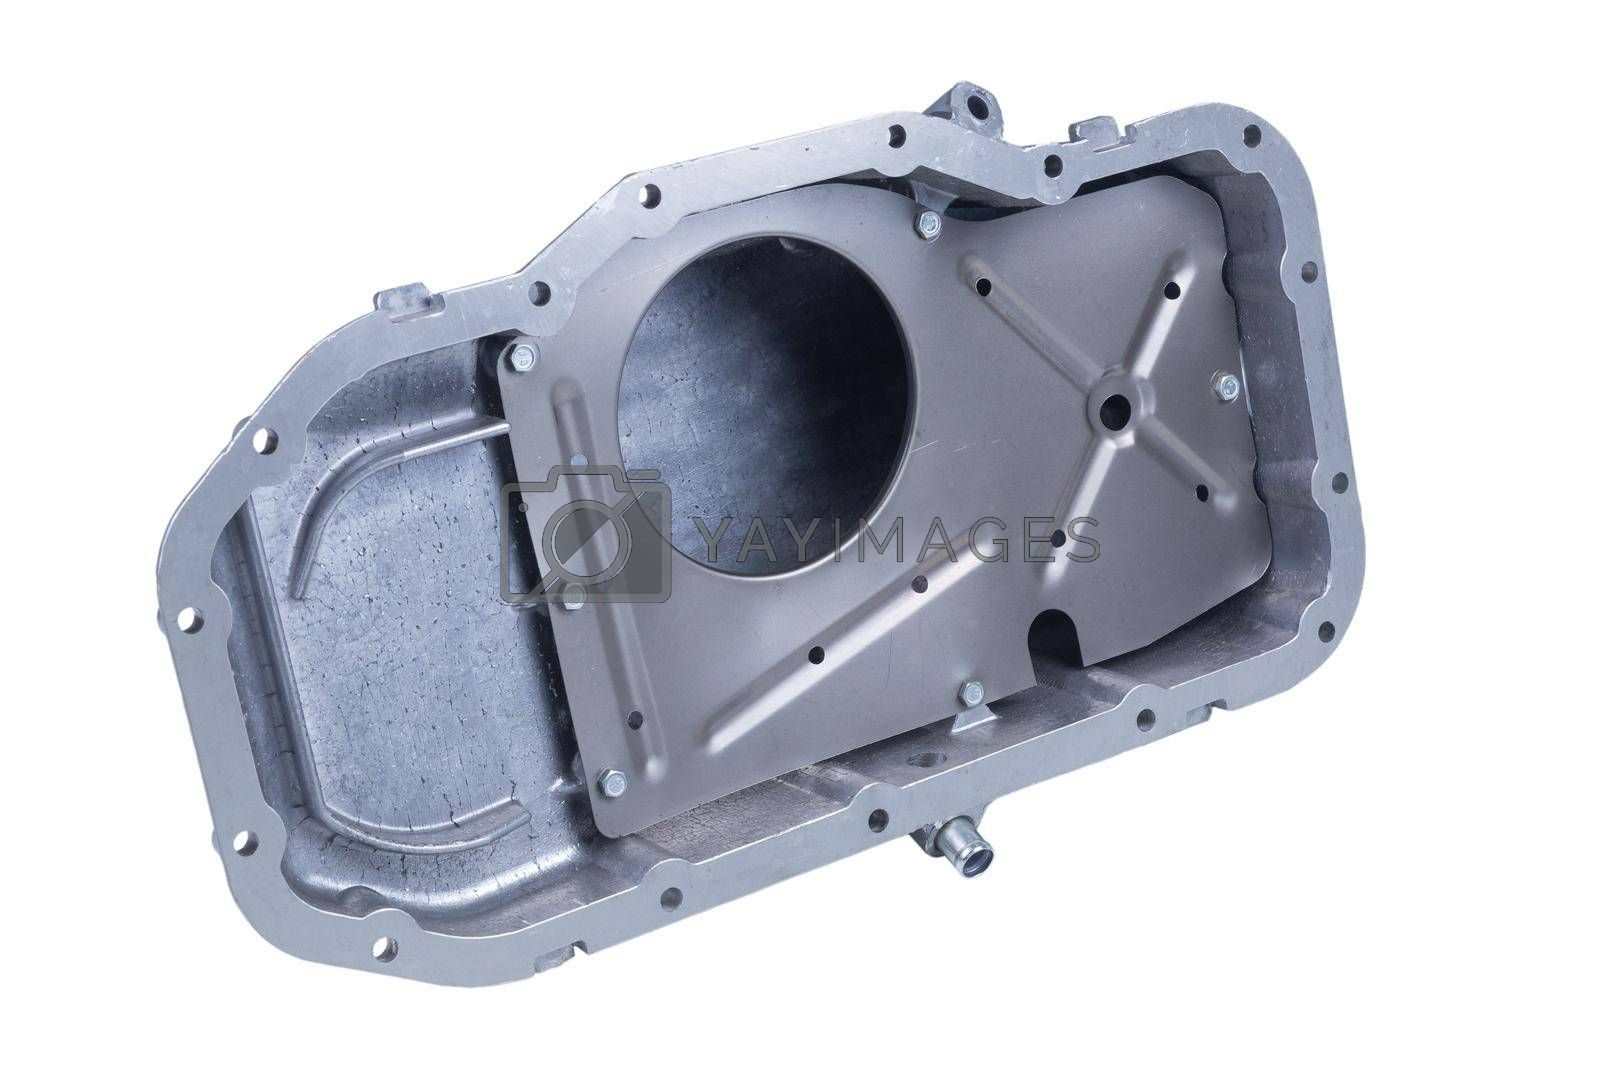 new aluminum car engine oil pan on white background